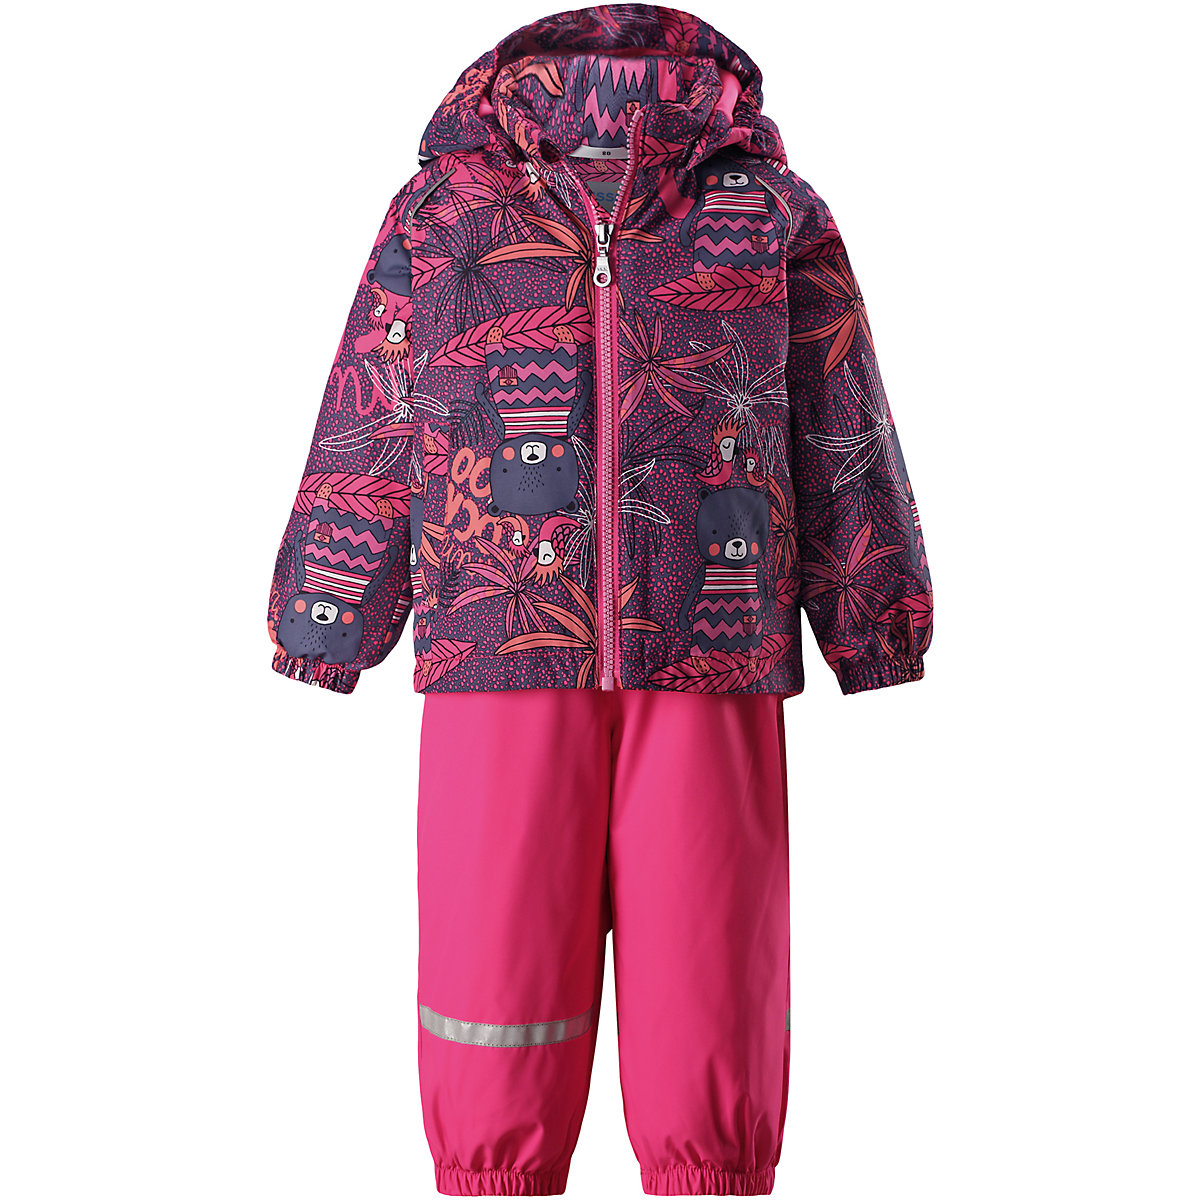 Children's Sets LASSIE for girls 7797181 Winter Track Suit Kids Children clothes Warm children s sets lassie for girls 8631960 winter track suit kids children clothes warm